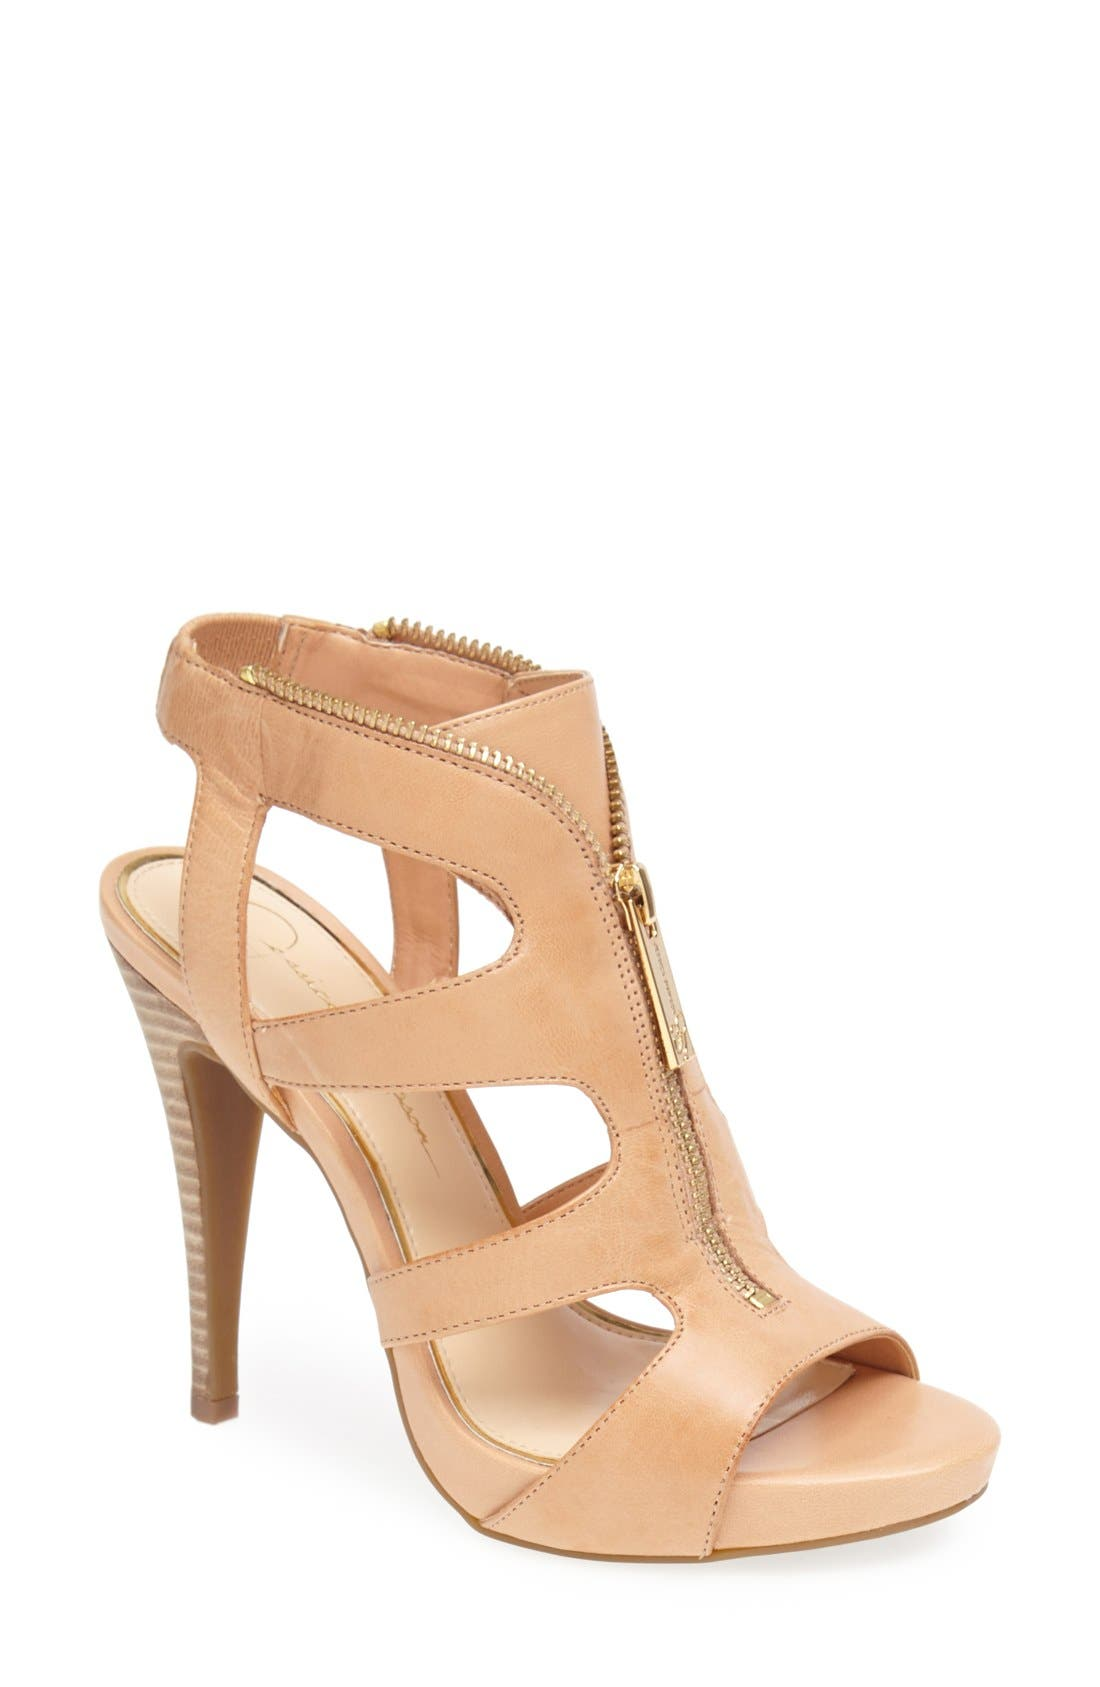 Alternate Image 1 Selected - Jessica Simpson 'Carmyne' Leather Sandal (Women)